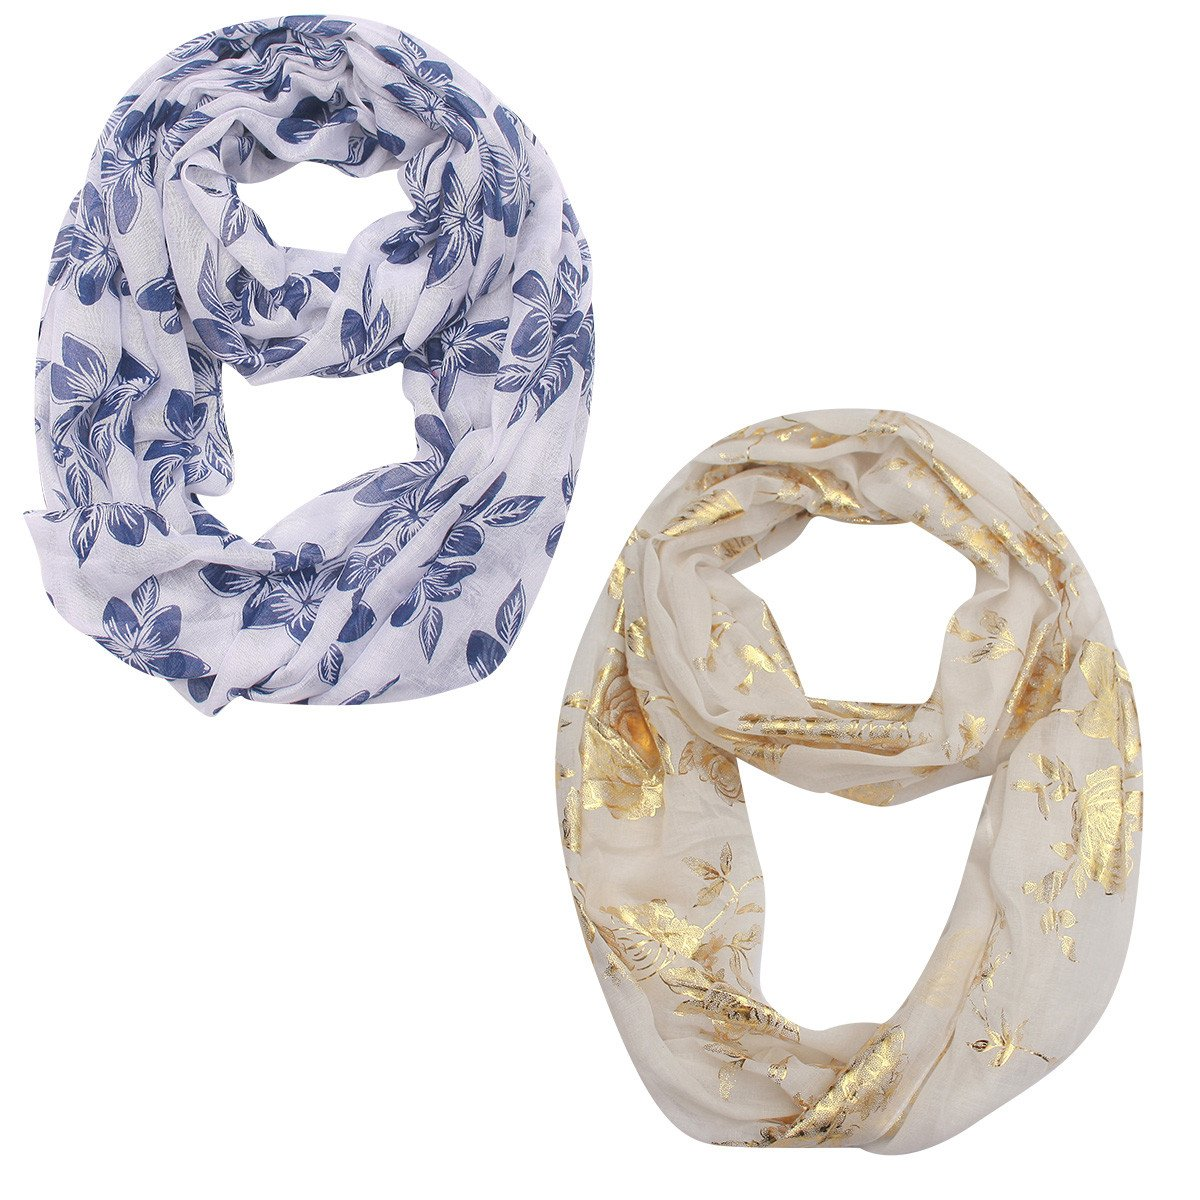 Women Lightweight Soft Printe Long Scarf 30-DAY MONEY REFUND GUARANTEED Reach CP65 Standard